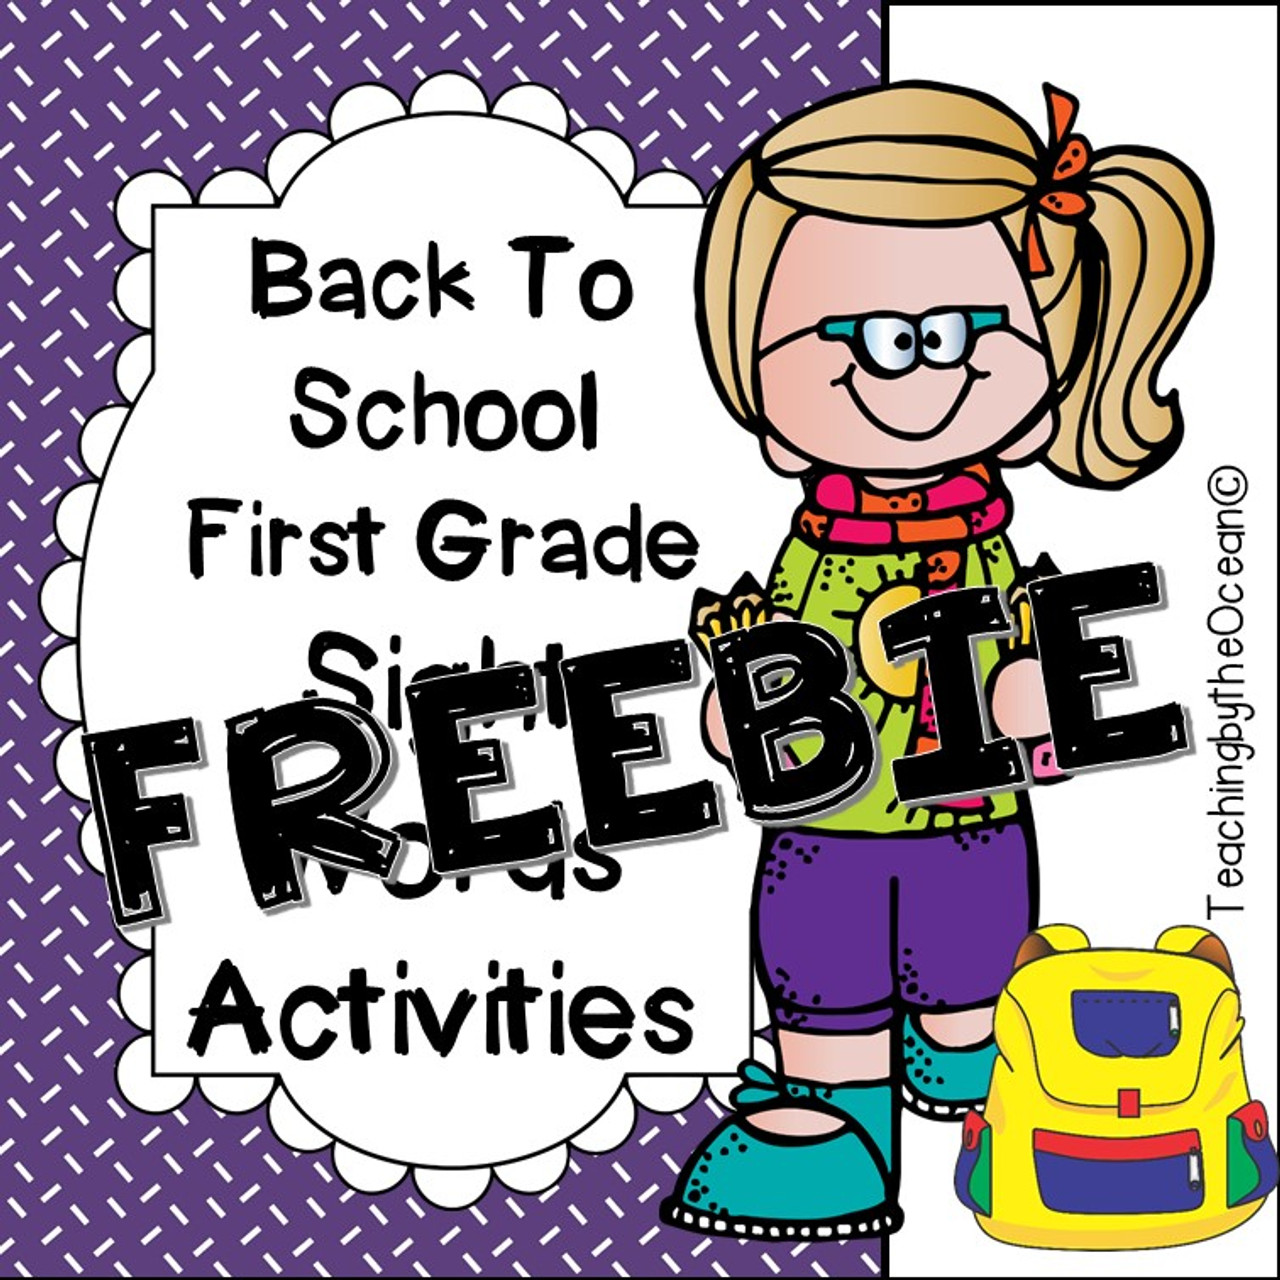 hight resolution of First Grade Sight Words Activities - Back to School Themed FREEBI